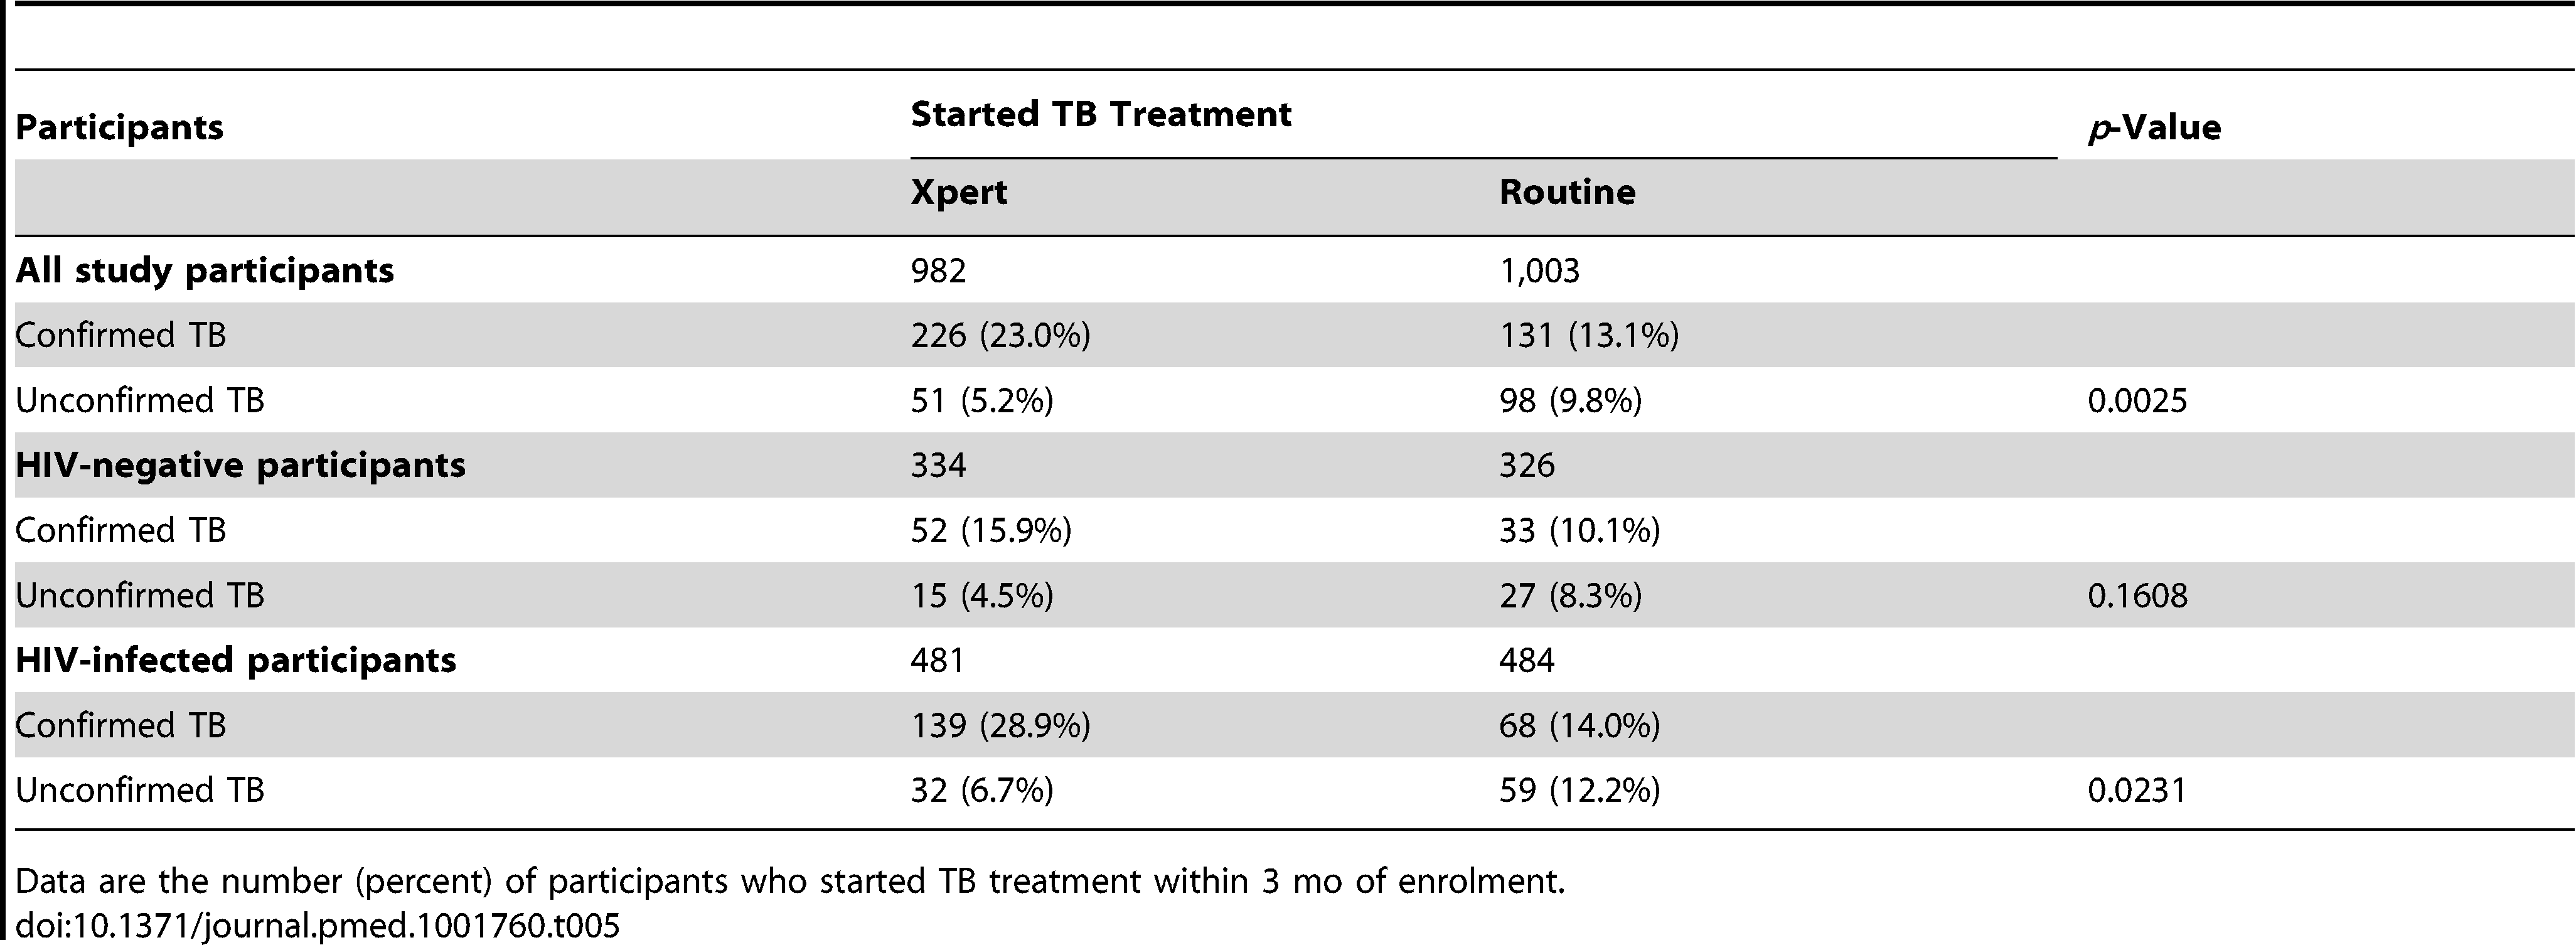 Participants initiating TB treatment with confirmed TB (bacteriologically positive) and unconfirmed TB, overall and by HIV status (ITT analysis).